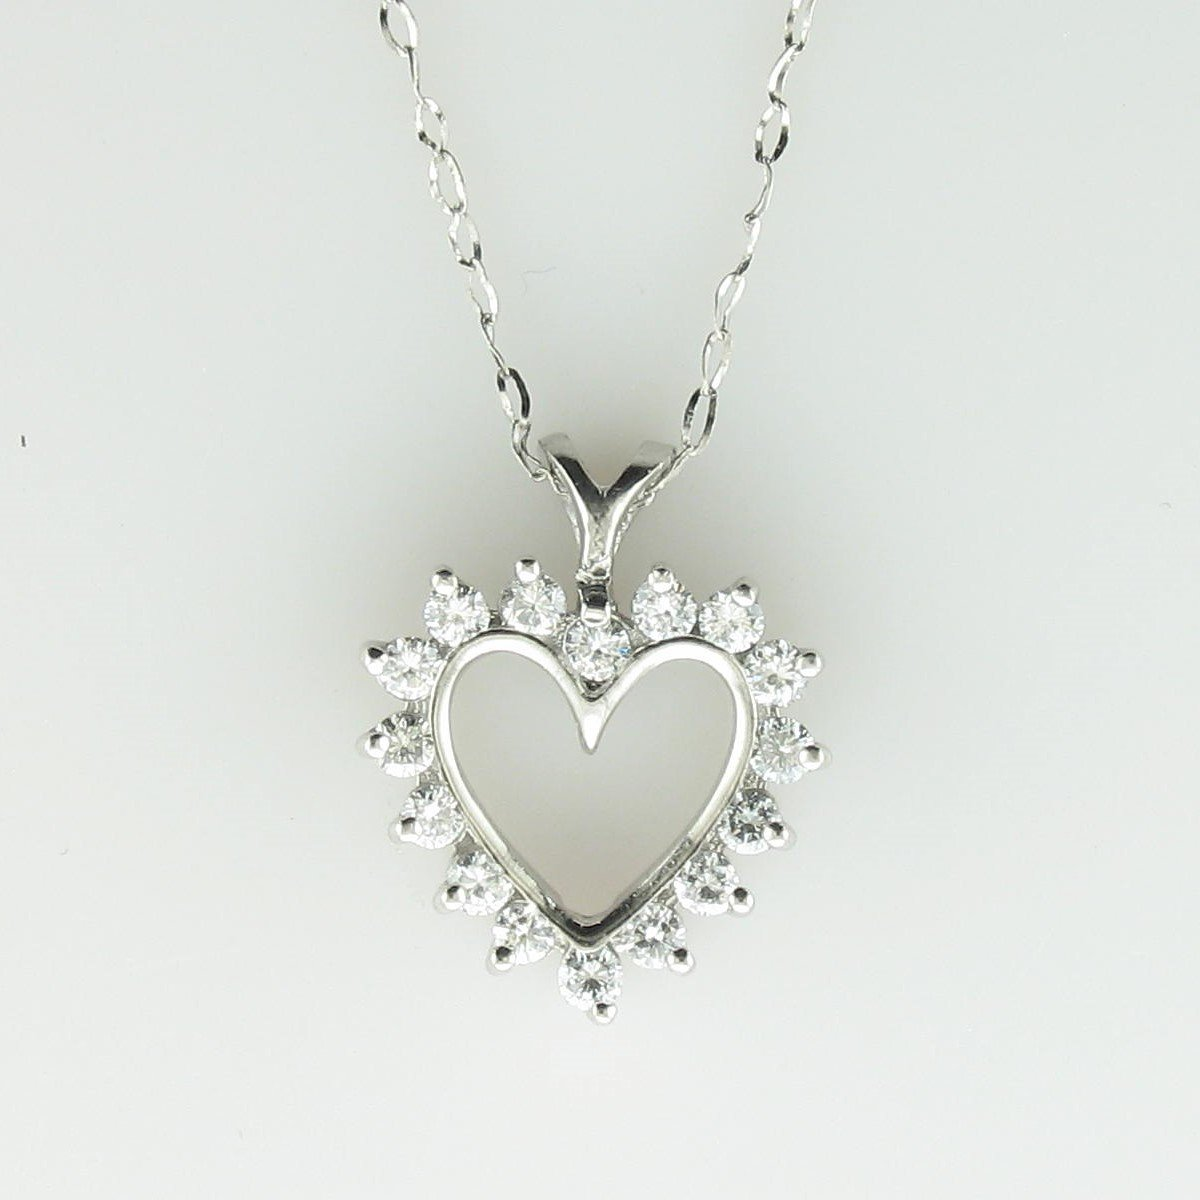 0.40tcw Diamond Heart Necklace set in Platinum